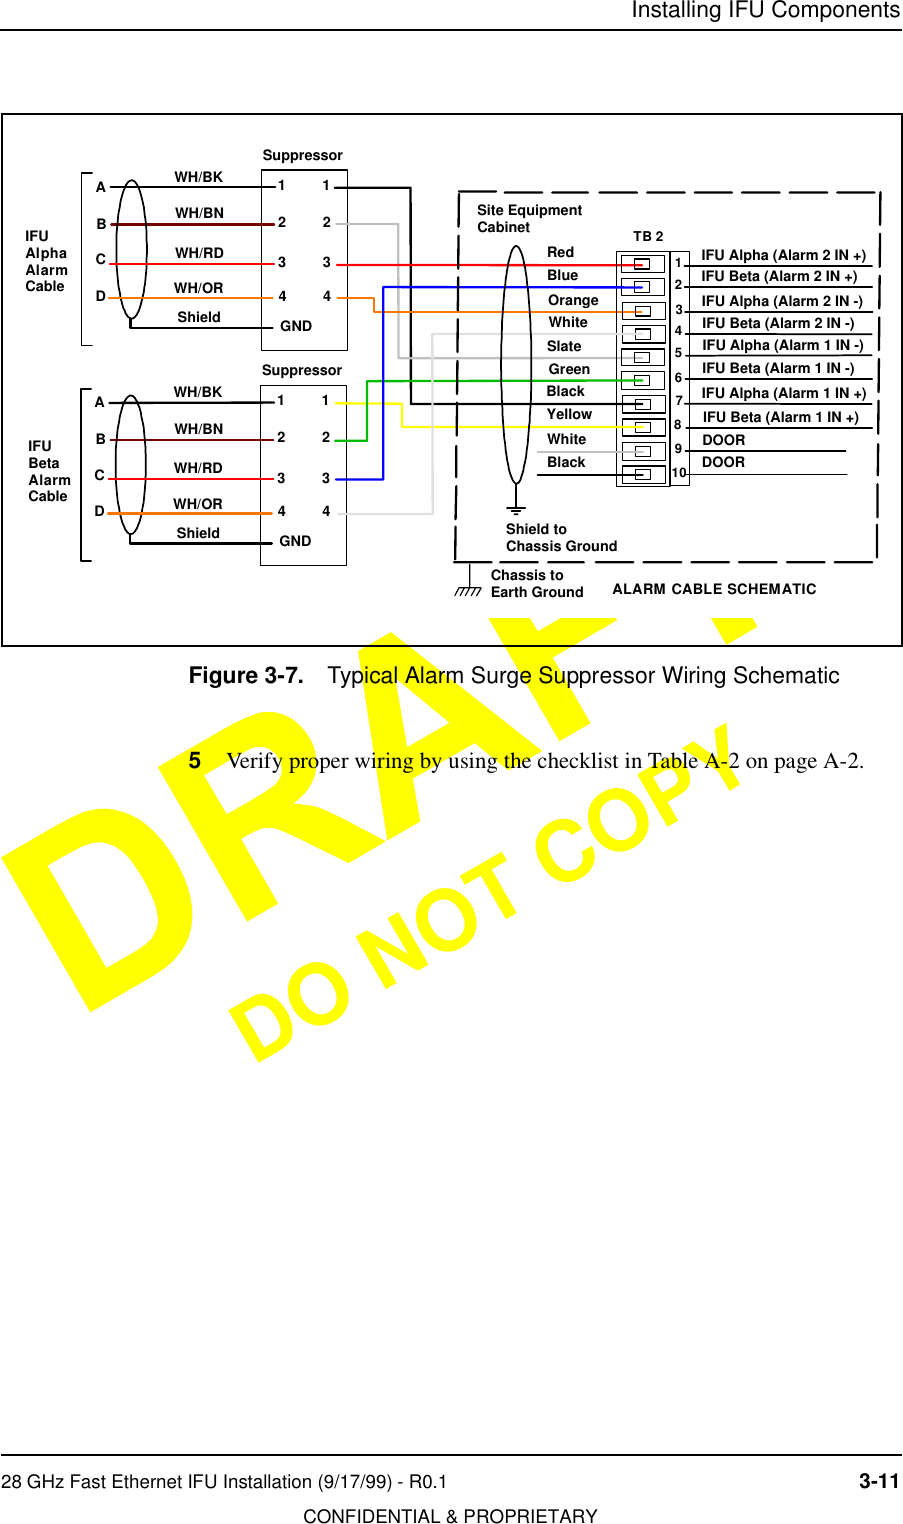 Triton Network Systems 28 Etp Fe Ghz Fast Ethernet Wireless Surge Protector Wiring Diagram Installing Ifu Components28 Installation 9 17 99